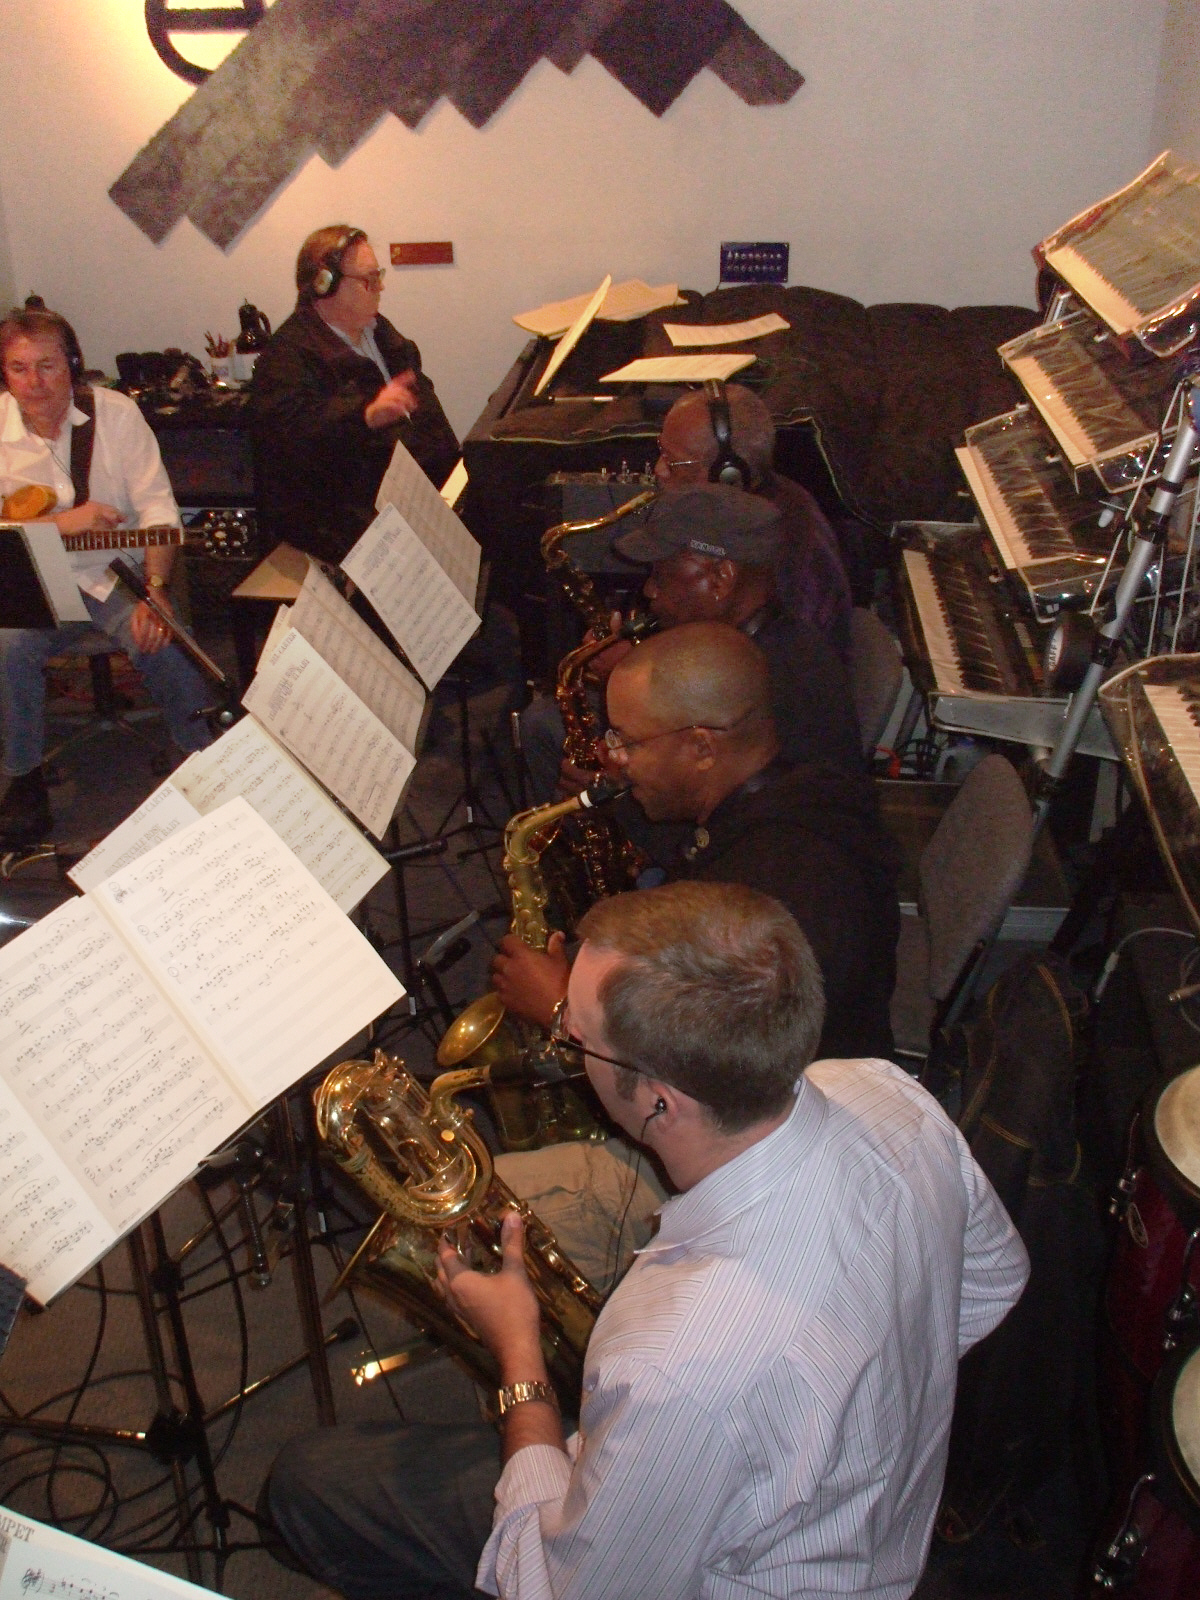 """Adam Schroeder on Baritone Sax, Rastine Calhoun on Alto Sax, Fred Jackson on Alto Sax and Charles Owens on Tenor Sax comprise the woodwinds section for Mel Carter's """"The Other Standards"""" big band recording sessions at Theta Sound Studio. Also pictured: guitarist Grant Geissman and arranger/pianist John Rodby."""